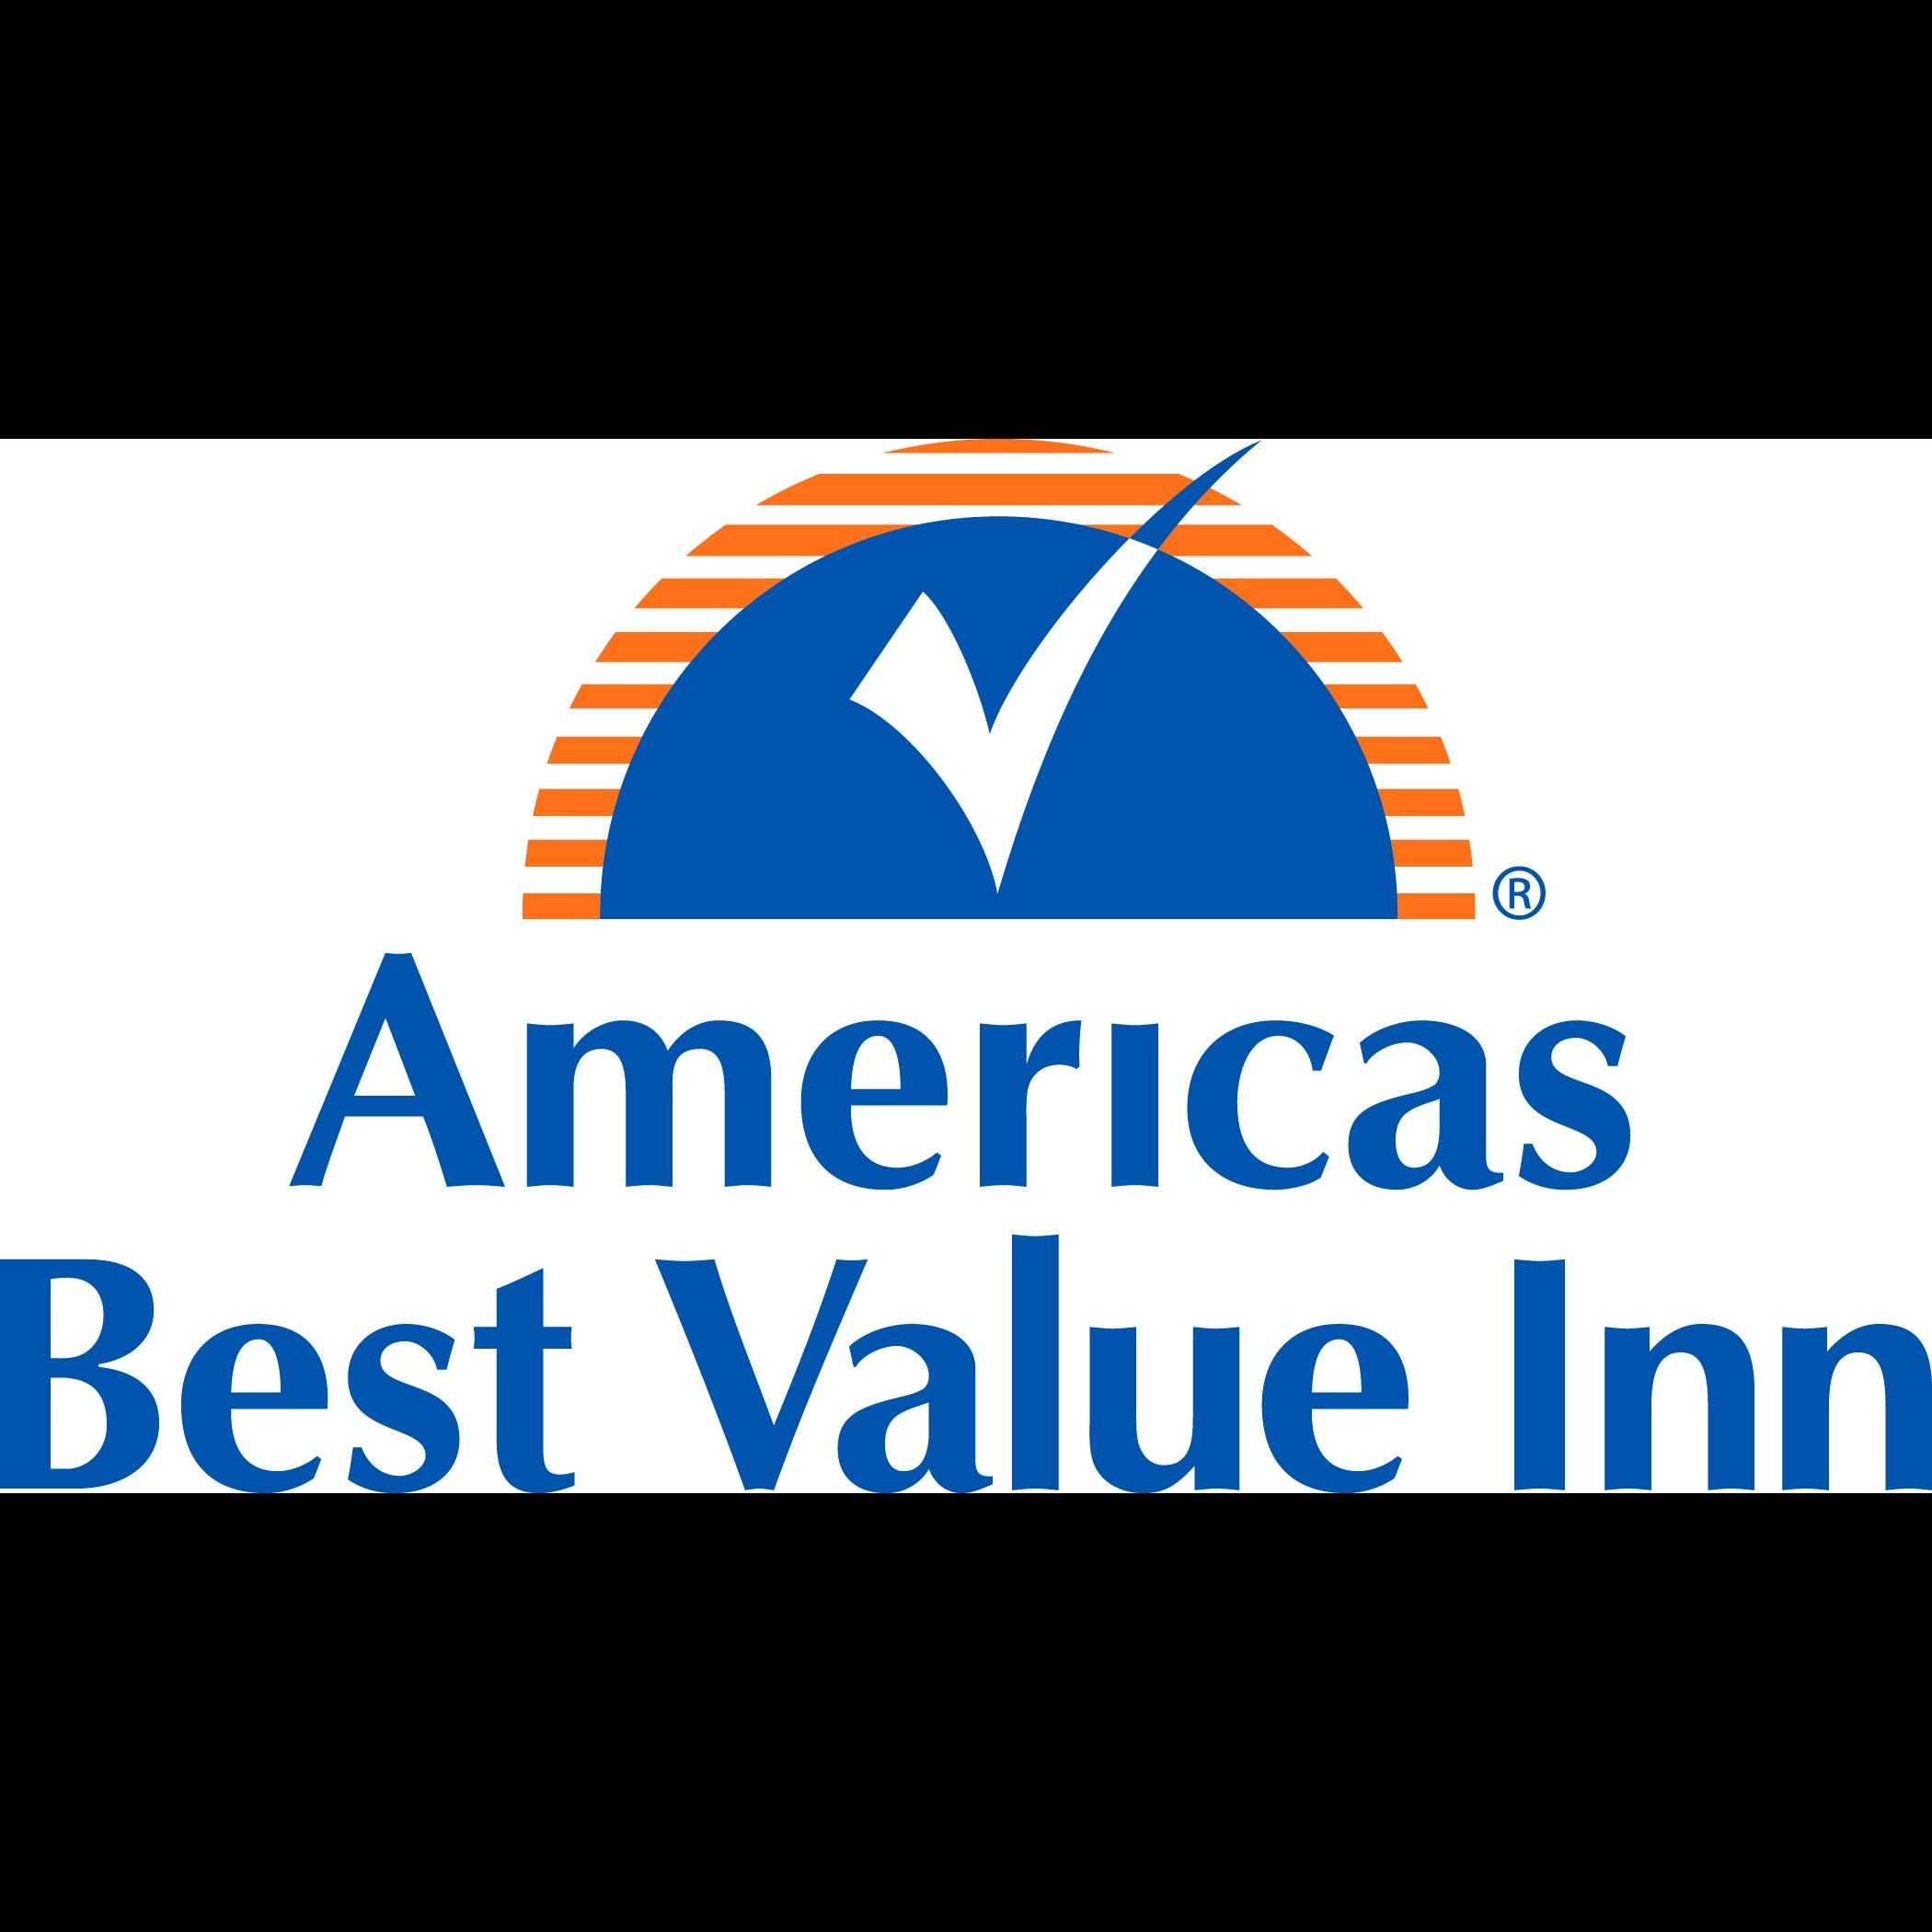 Americas Best Value Inn - Monroeville